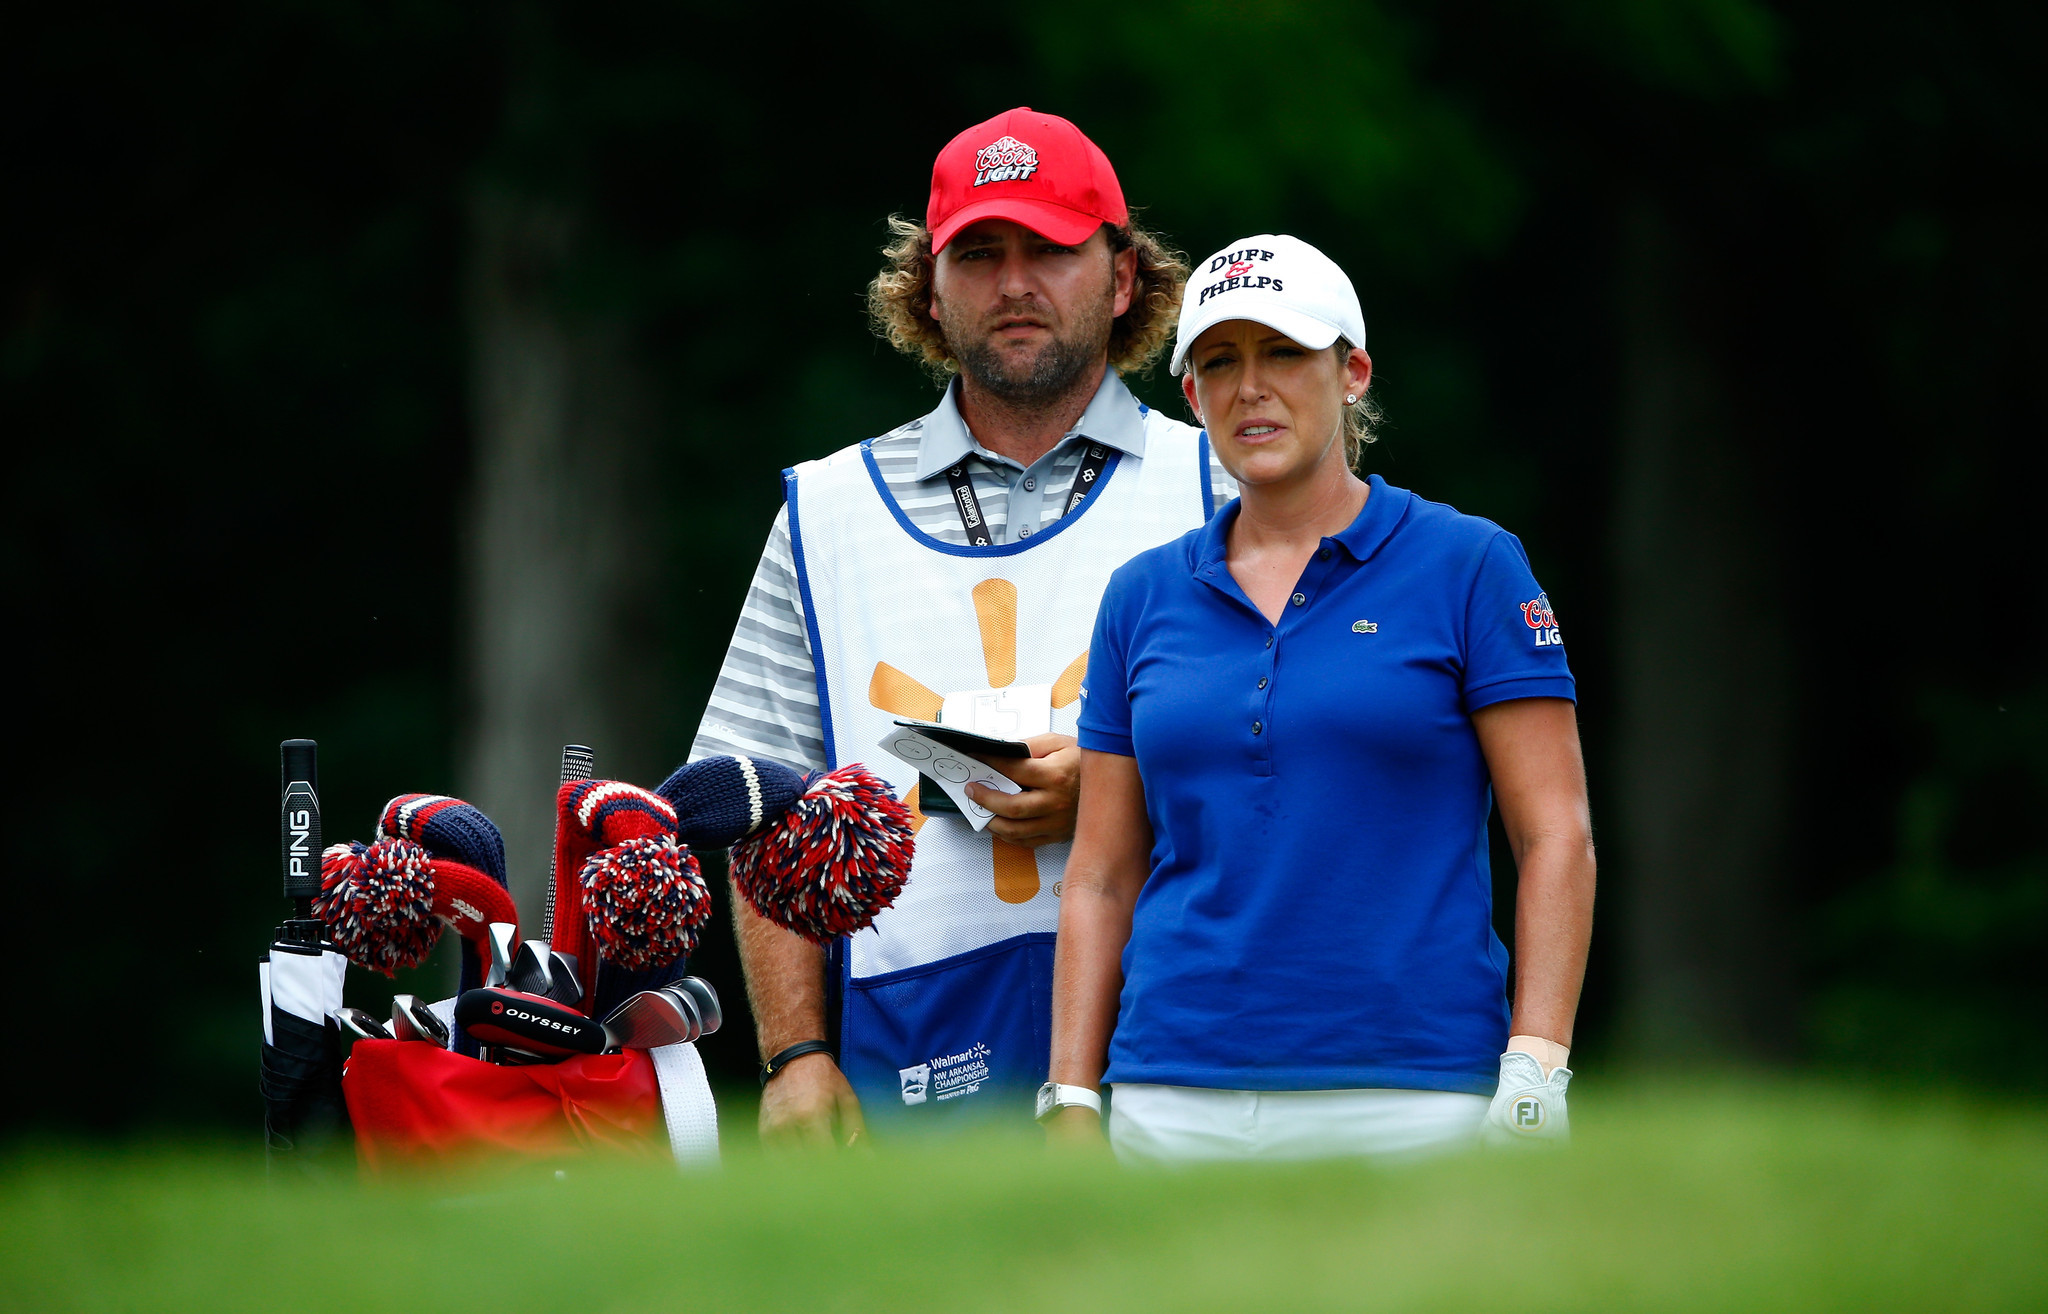 Meet the U.S. team for the International Crown at Caves Valley - CRISTIE KERR